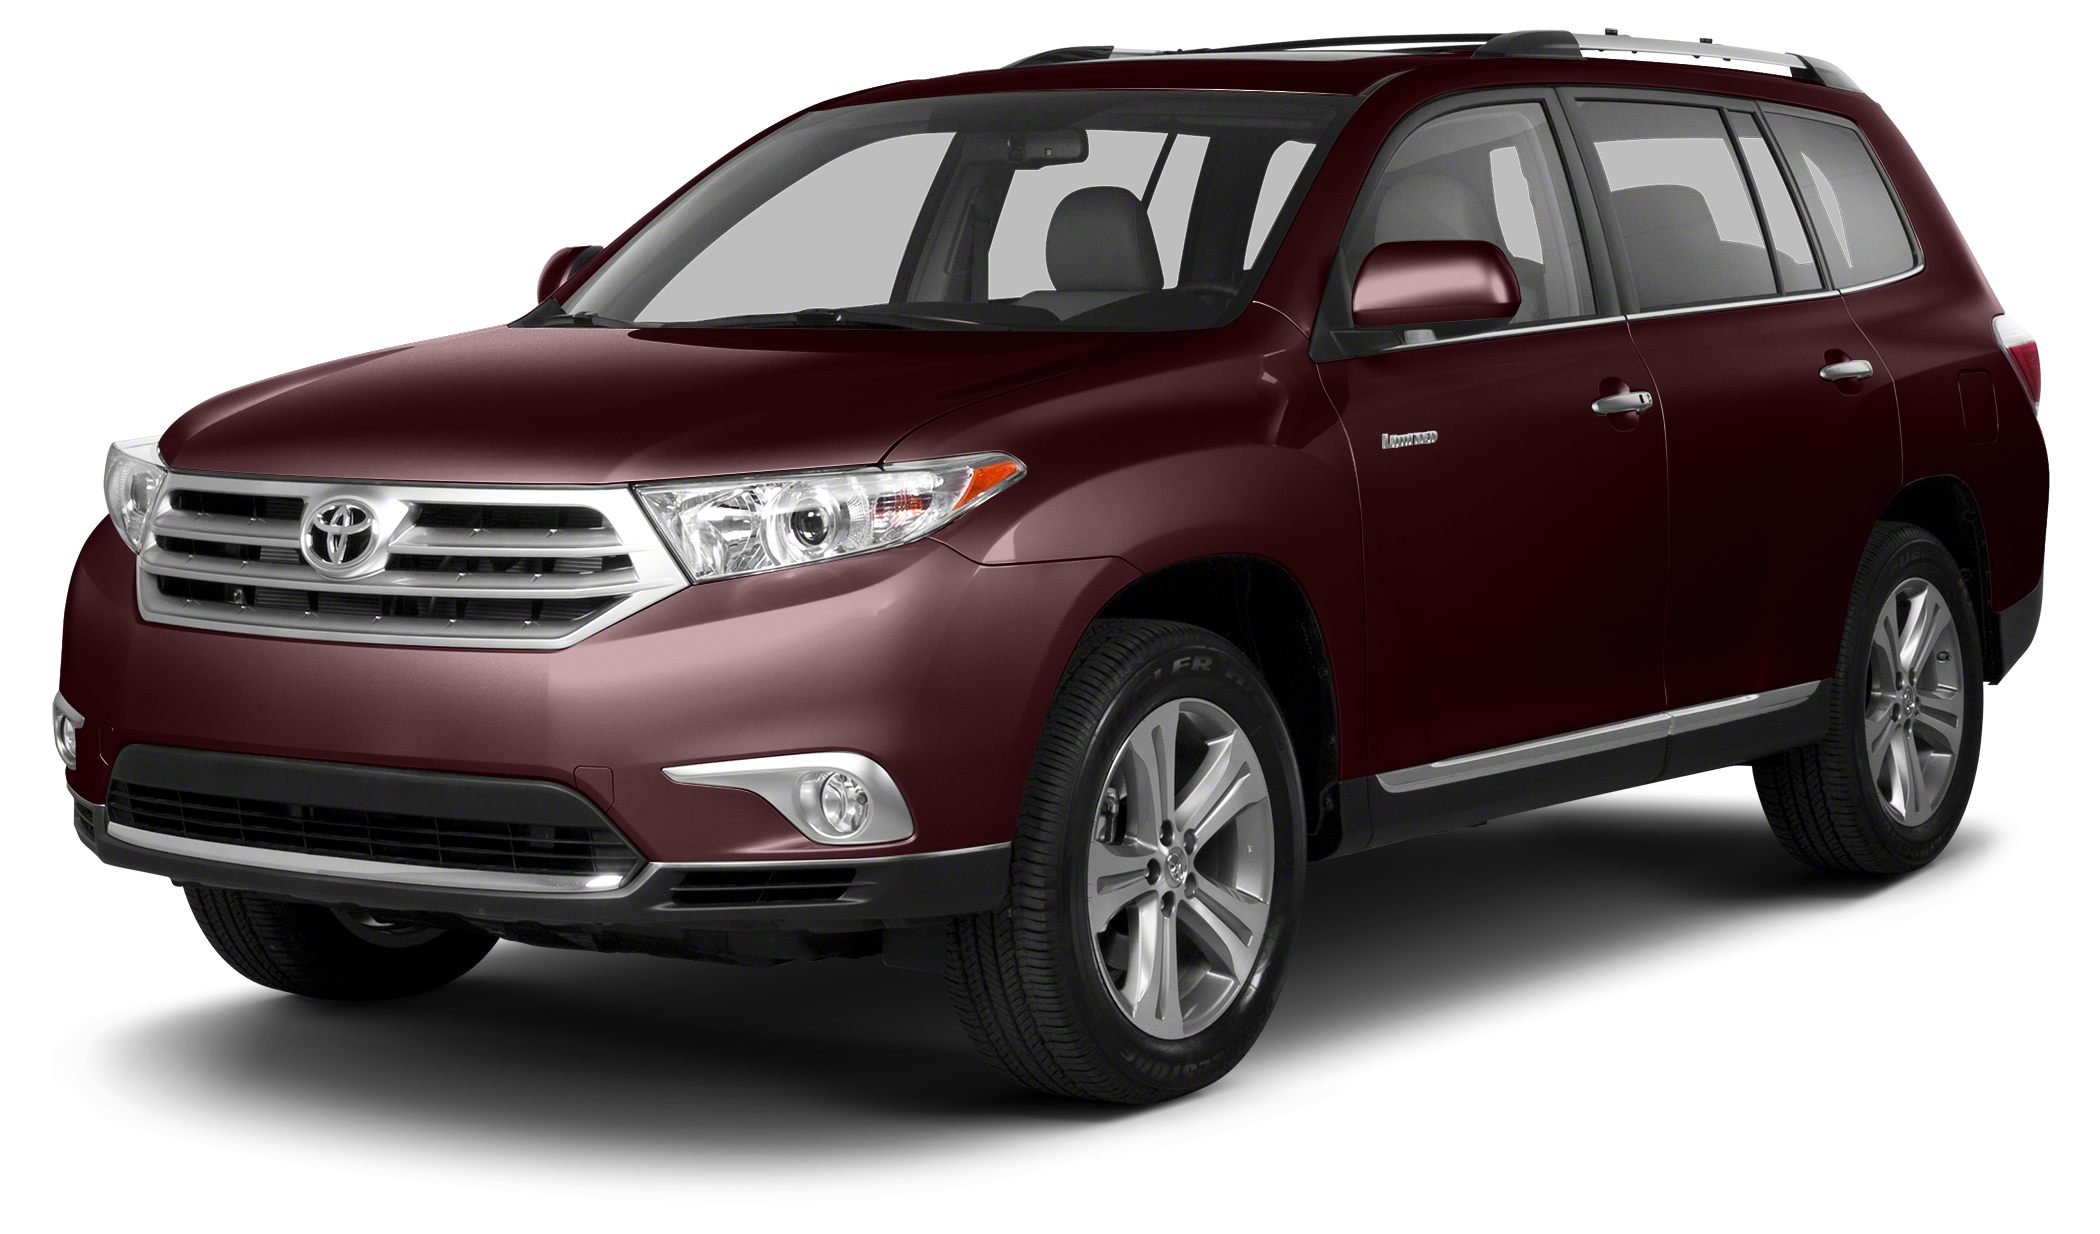 2013 Toyota Highlander Base Plus Plus trim CARFAX 1-Owner LOW MILES - 34658 PRICED TO MOVE 80